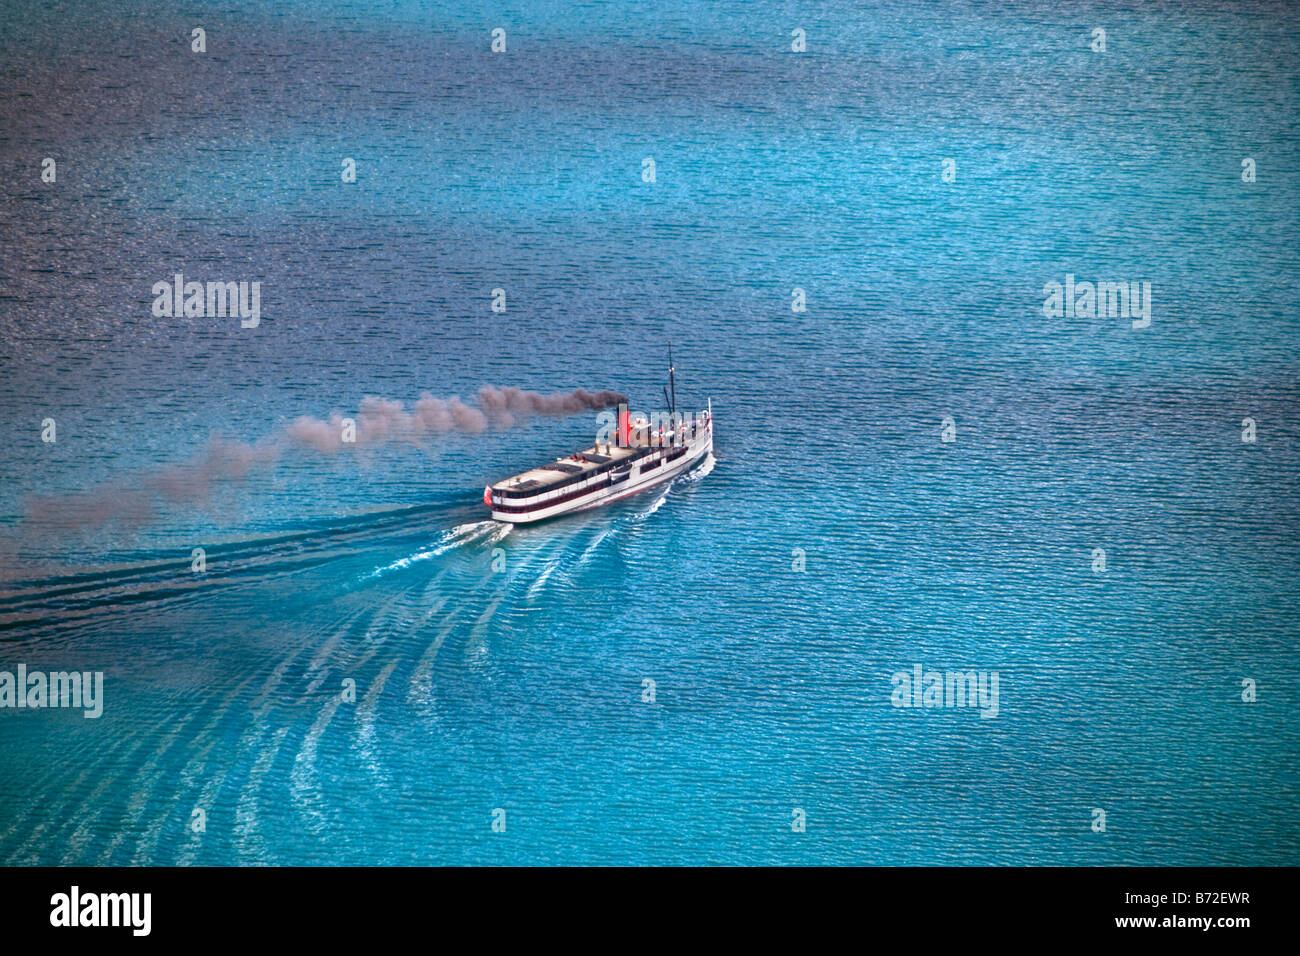 New Zealand, South Island, Queenstown, Aerial view of TSS Earnslaw, steam-powered boat doing lake cruises. - Stock Image